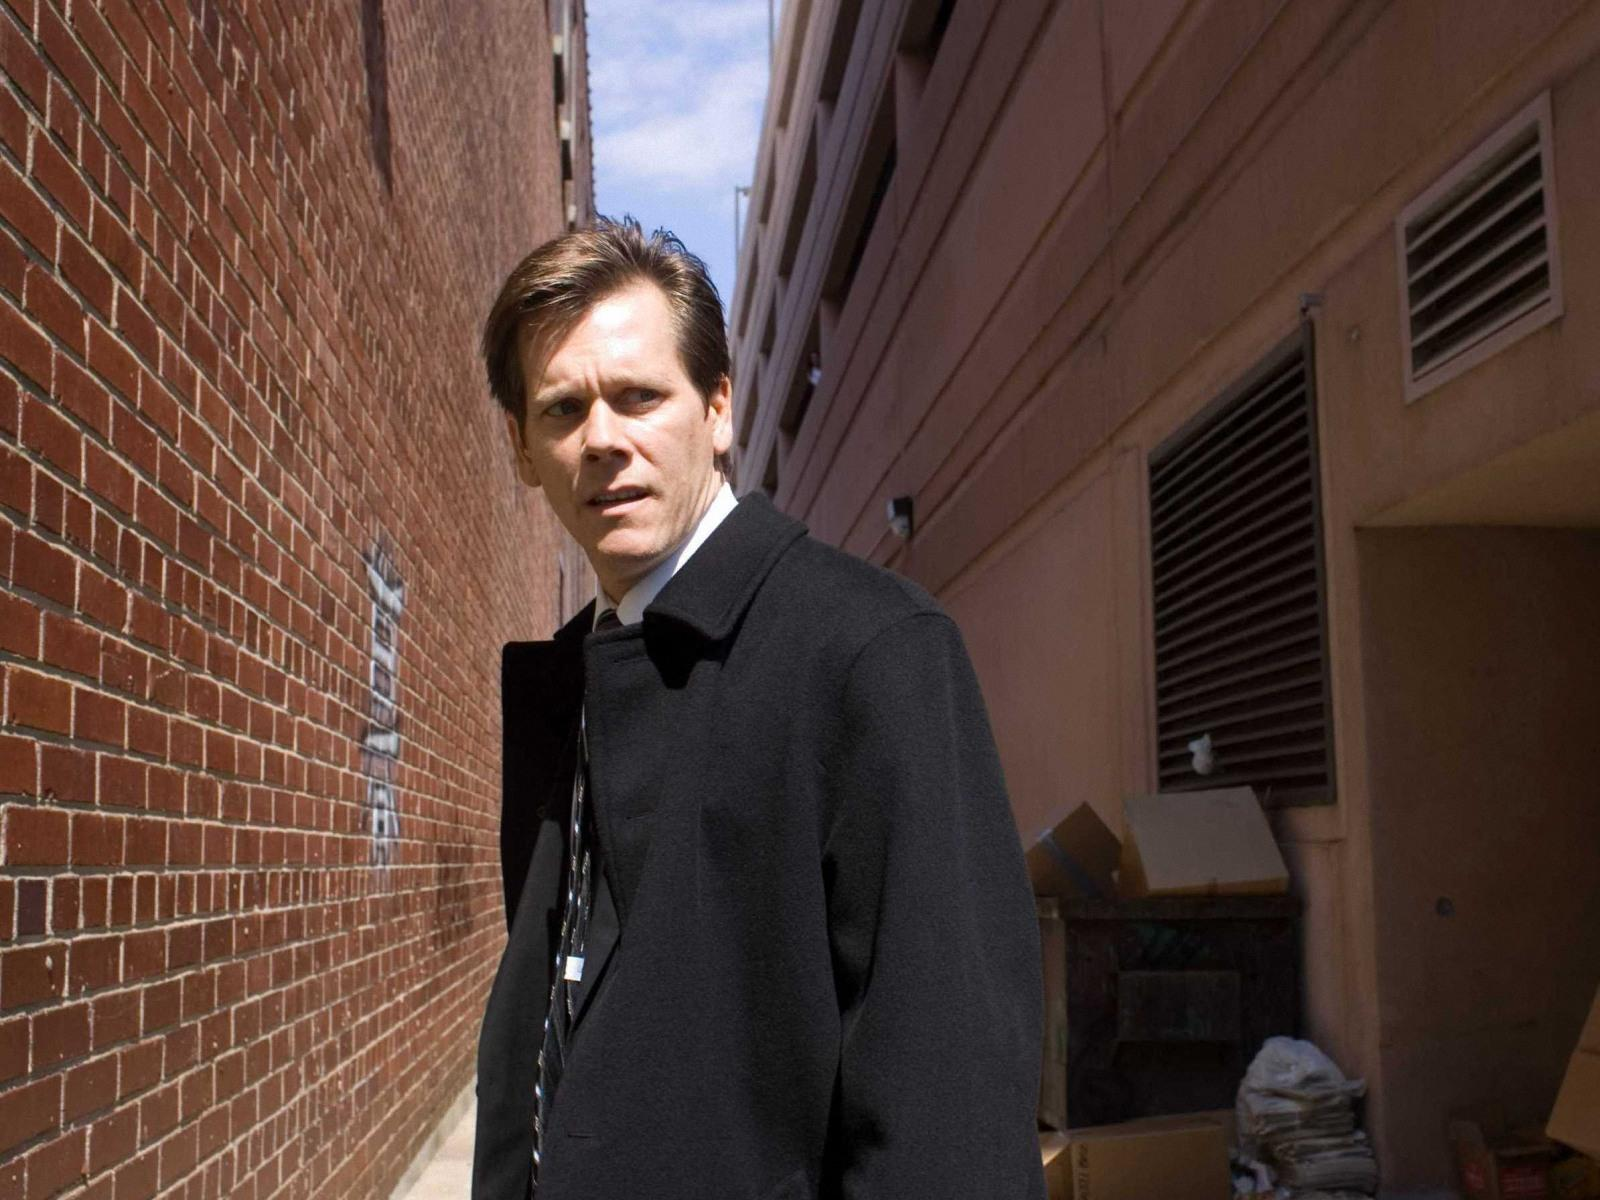 Kevin Bacon WallpapersKevin Bacon Wallpapers Pictures 1600x1200